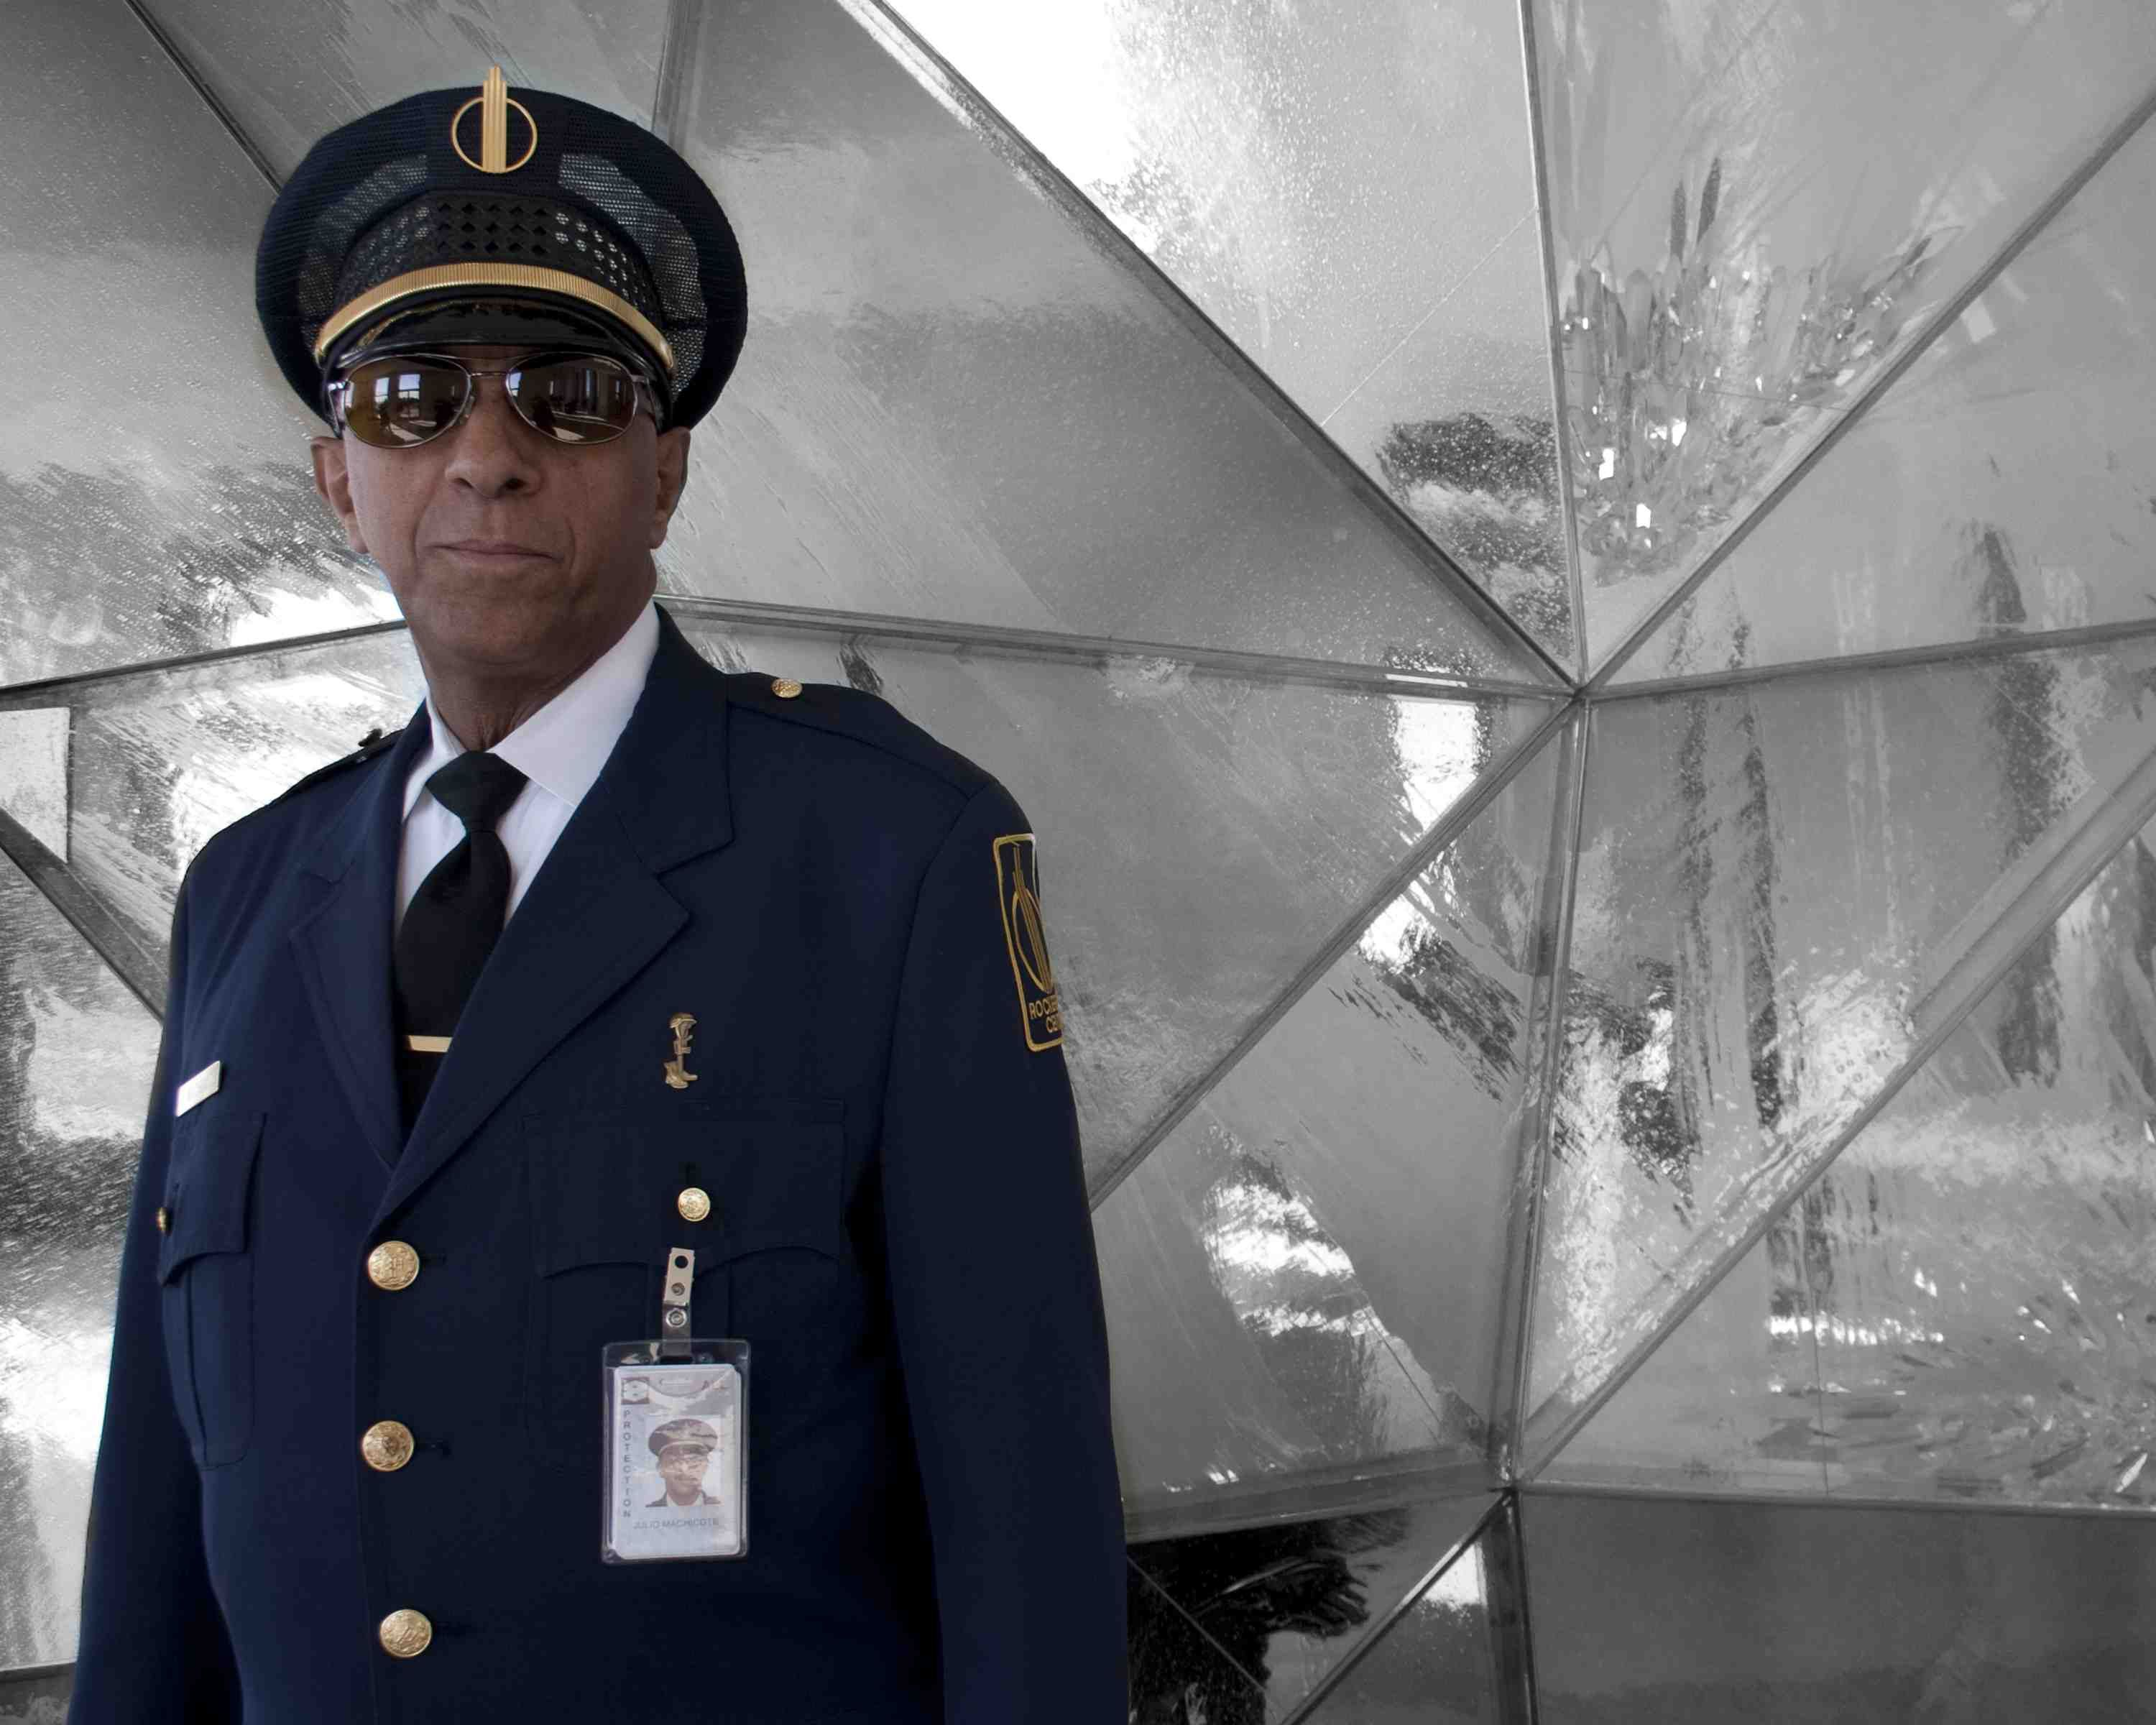 Pin by Bmgareth on Police uniforms Security guard